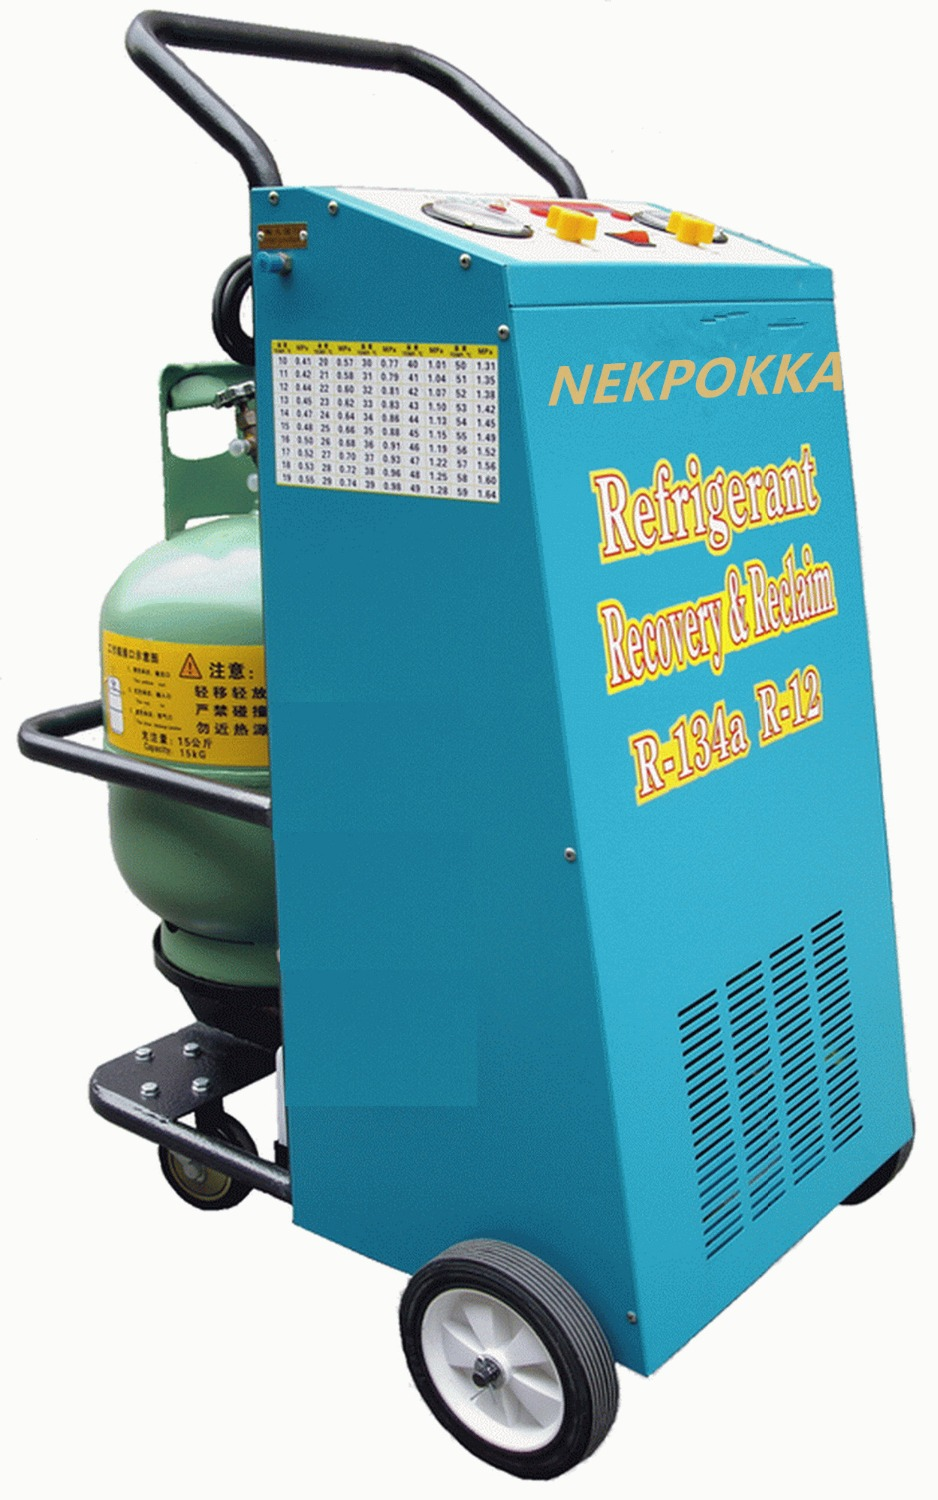 Refrigerant recovery and filling machine,It is suitable for automobile air conditioner refrigerant recovery and filling perfect strangers friendship strength and recovery after boston s worst day